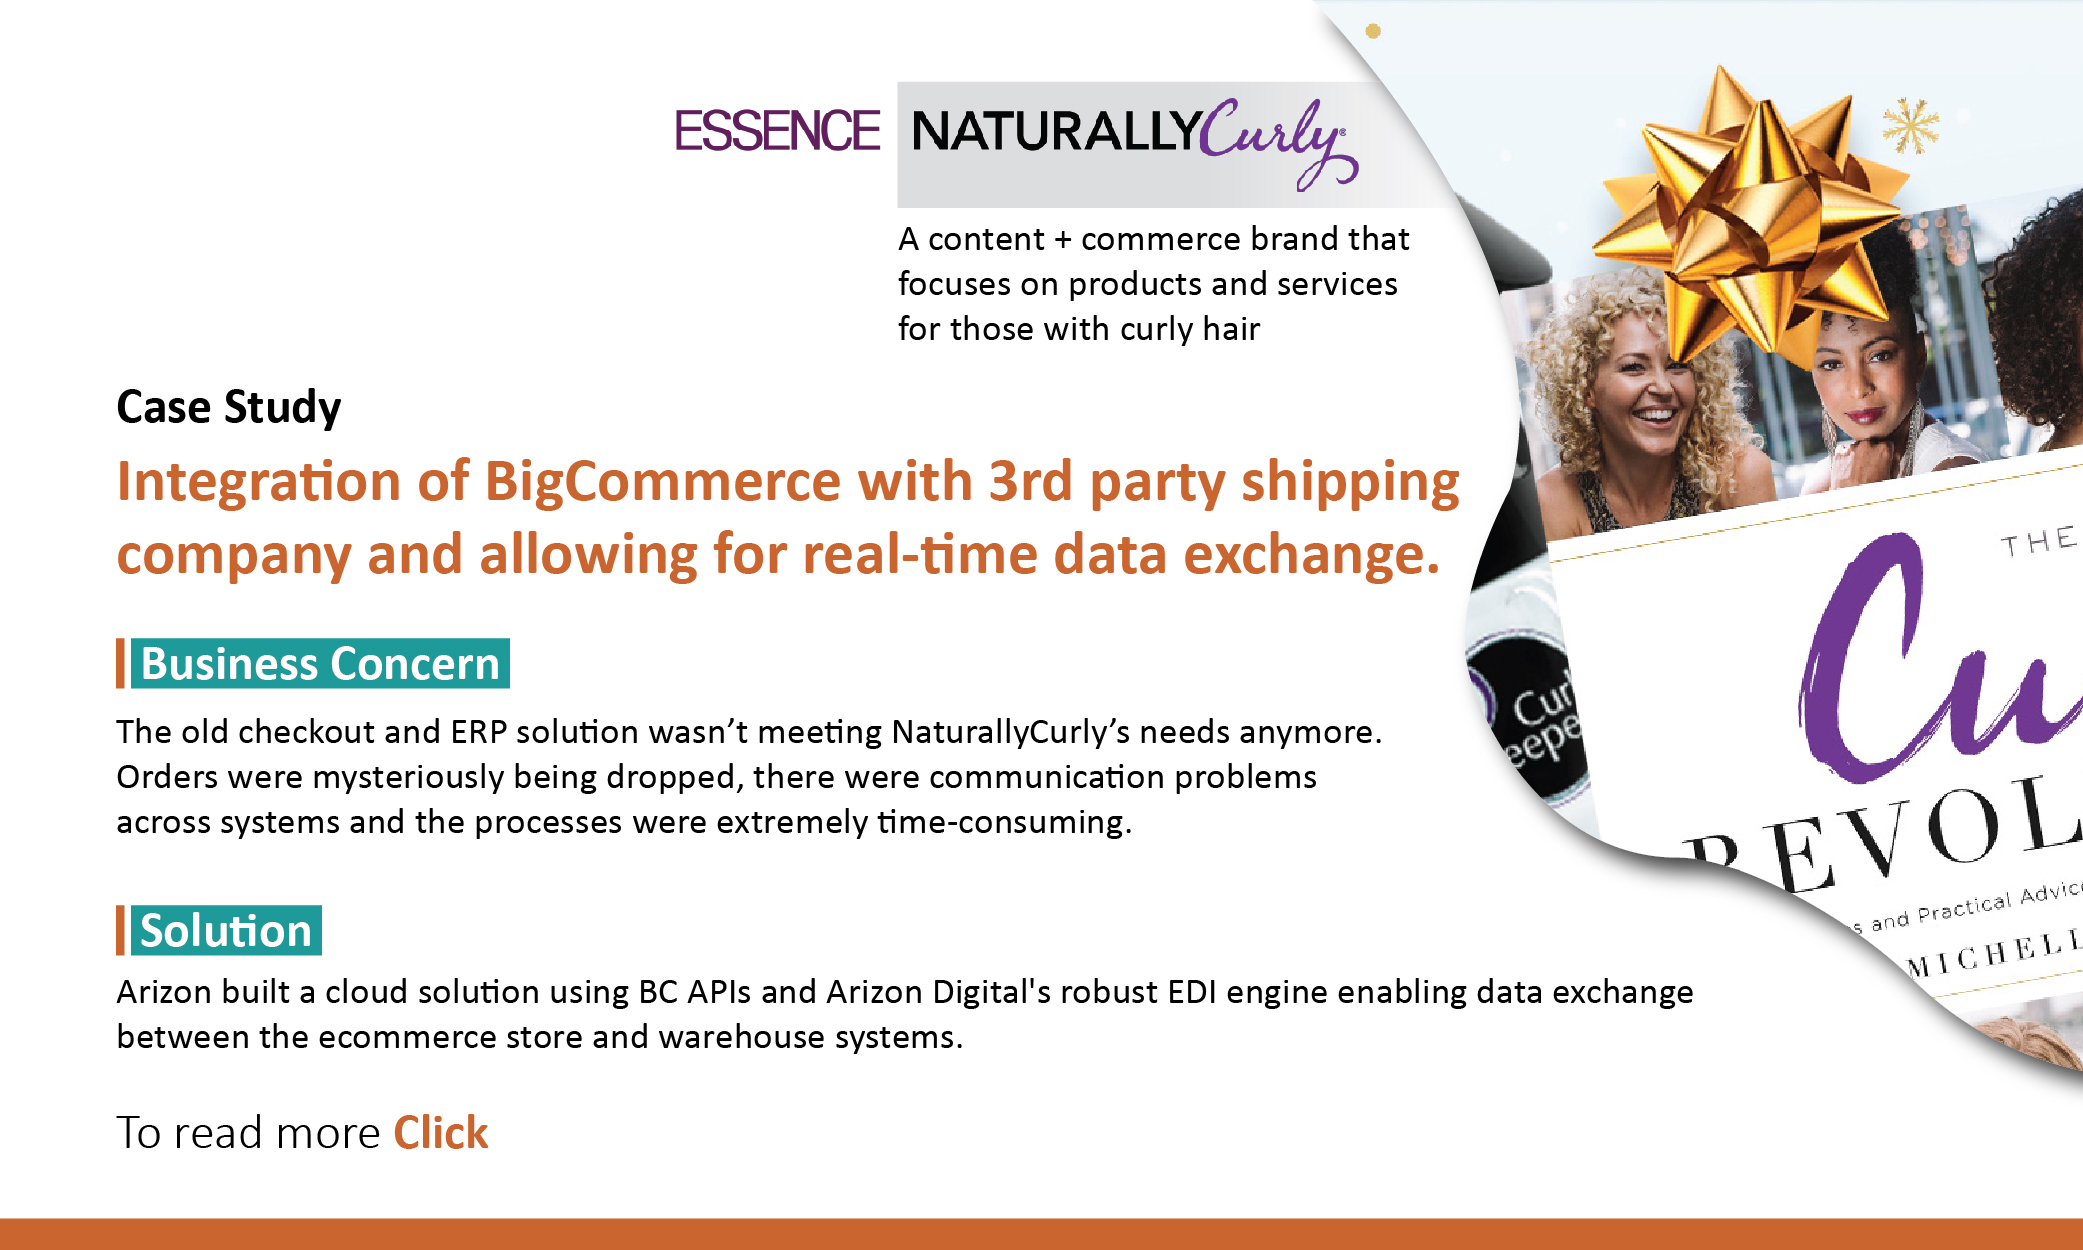 Integration of Bigcommerce with 3rd party shipping company and allowing for real-time data exchange.